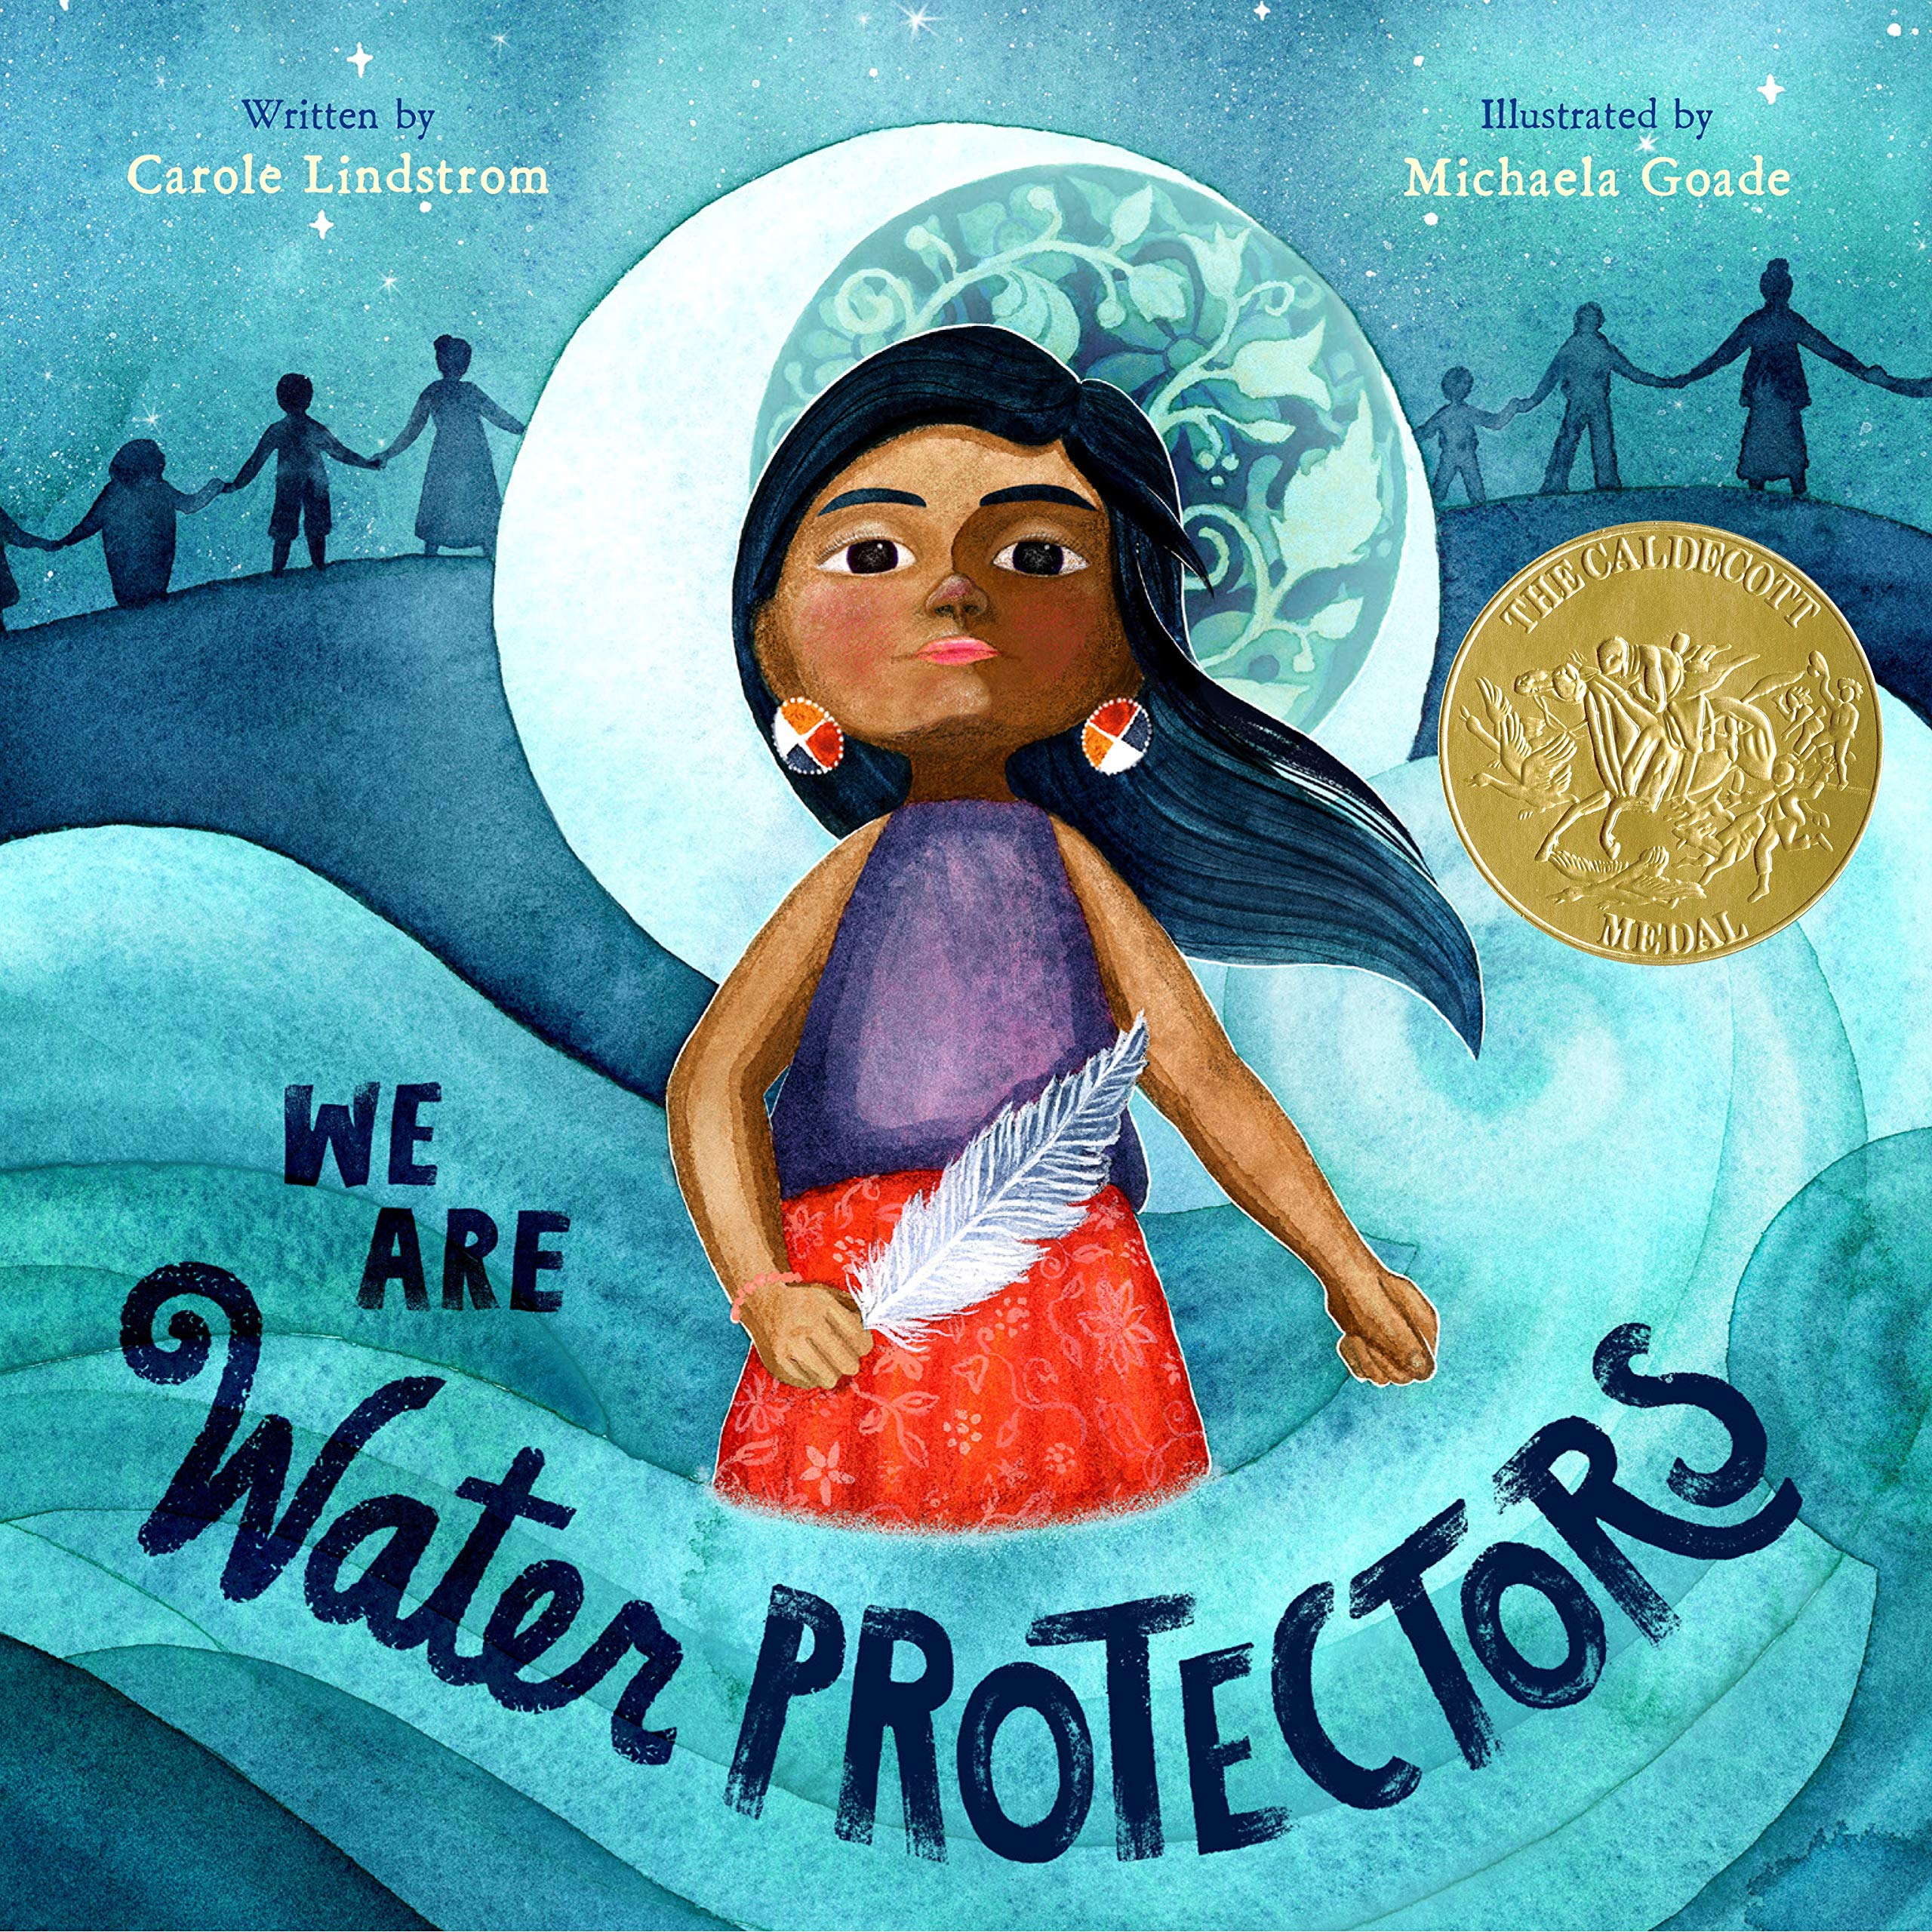 """The book cover for """"We Are Water Protectors"""" with an illustration of a medium skinned figure with long black hair blowing in the wind, wearing colorful earrings, a purple shirt, red skirt, and a pink bracelet, holding a white feather in one hand. The figure stands in the middle of abstract waves, in front of a crescent mood, with six figures in shadow holding hands in the background."""